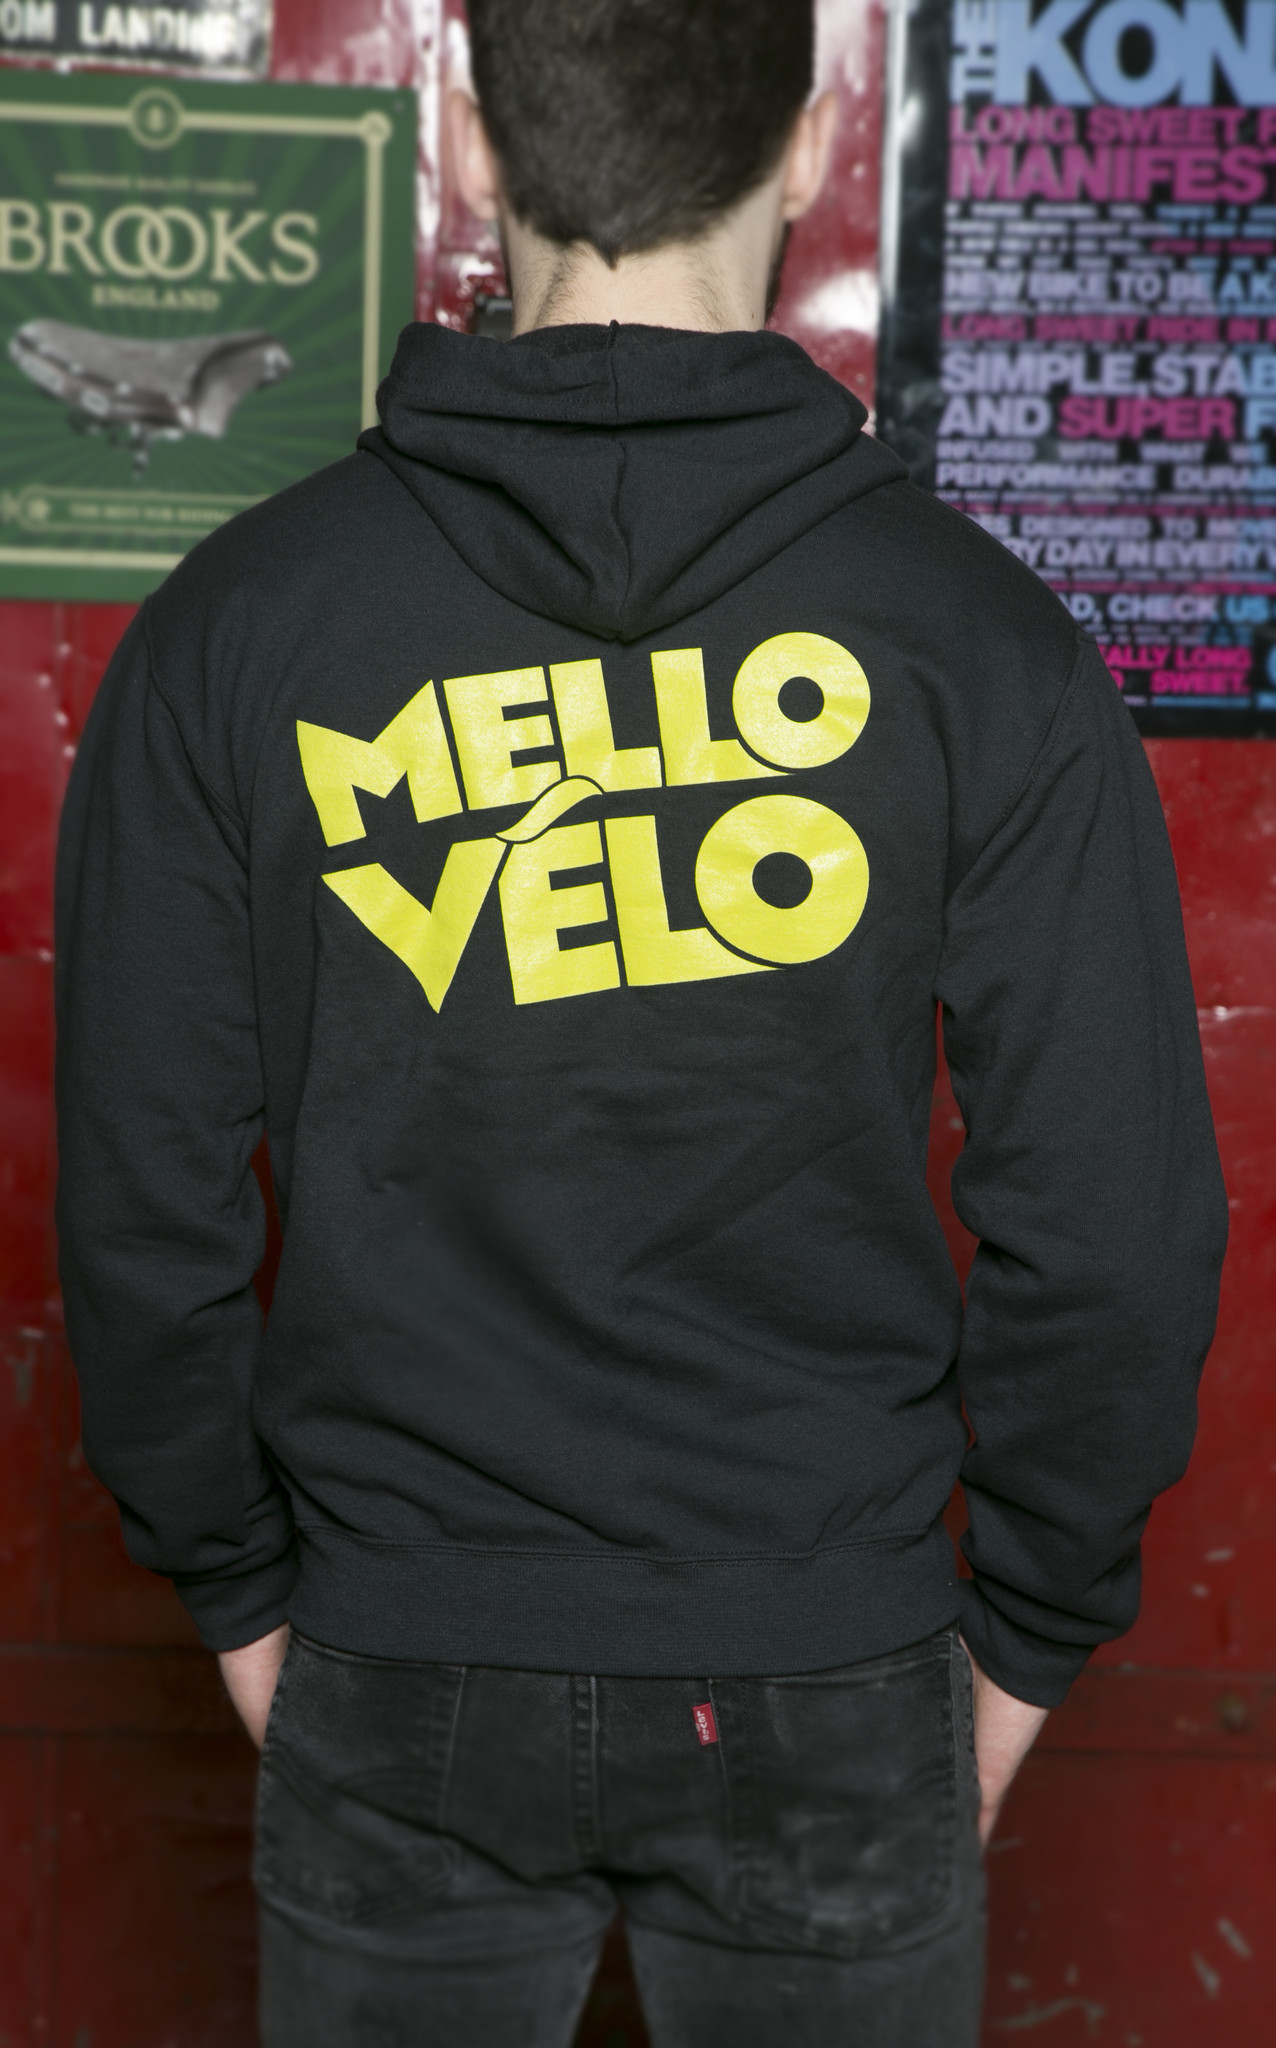 Mello Velo Zip-up Hoodie Black